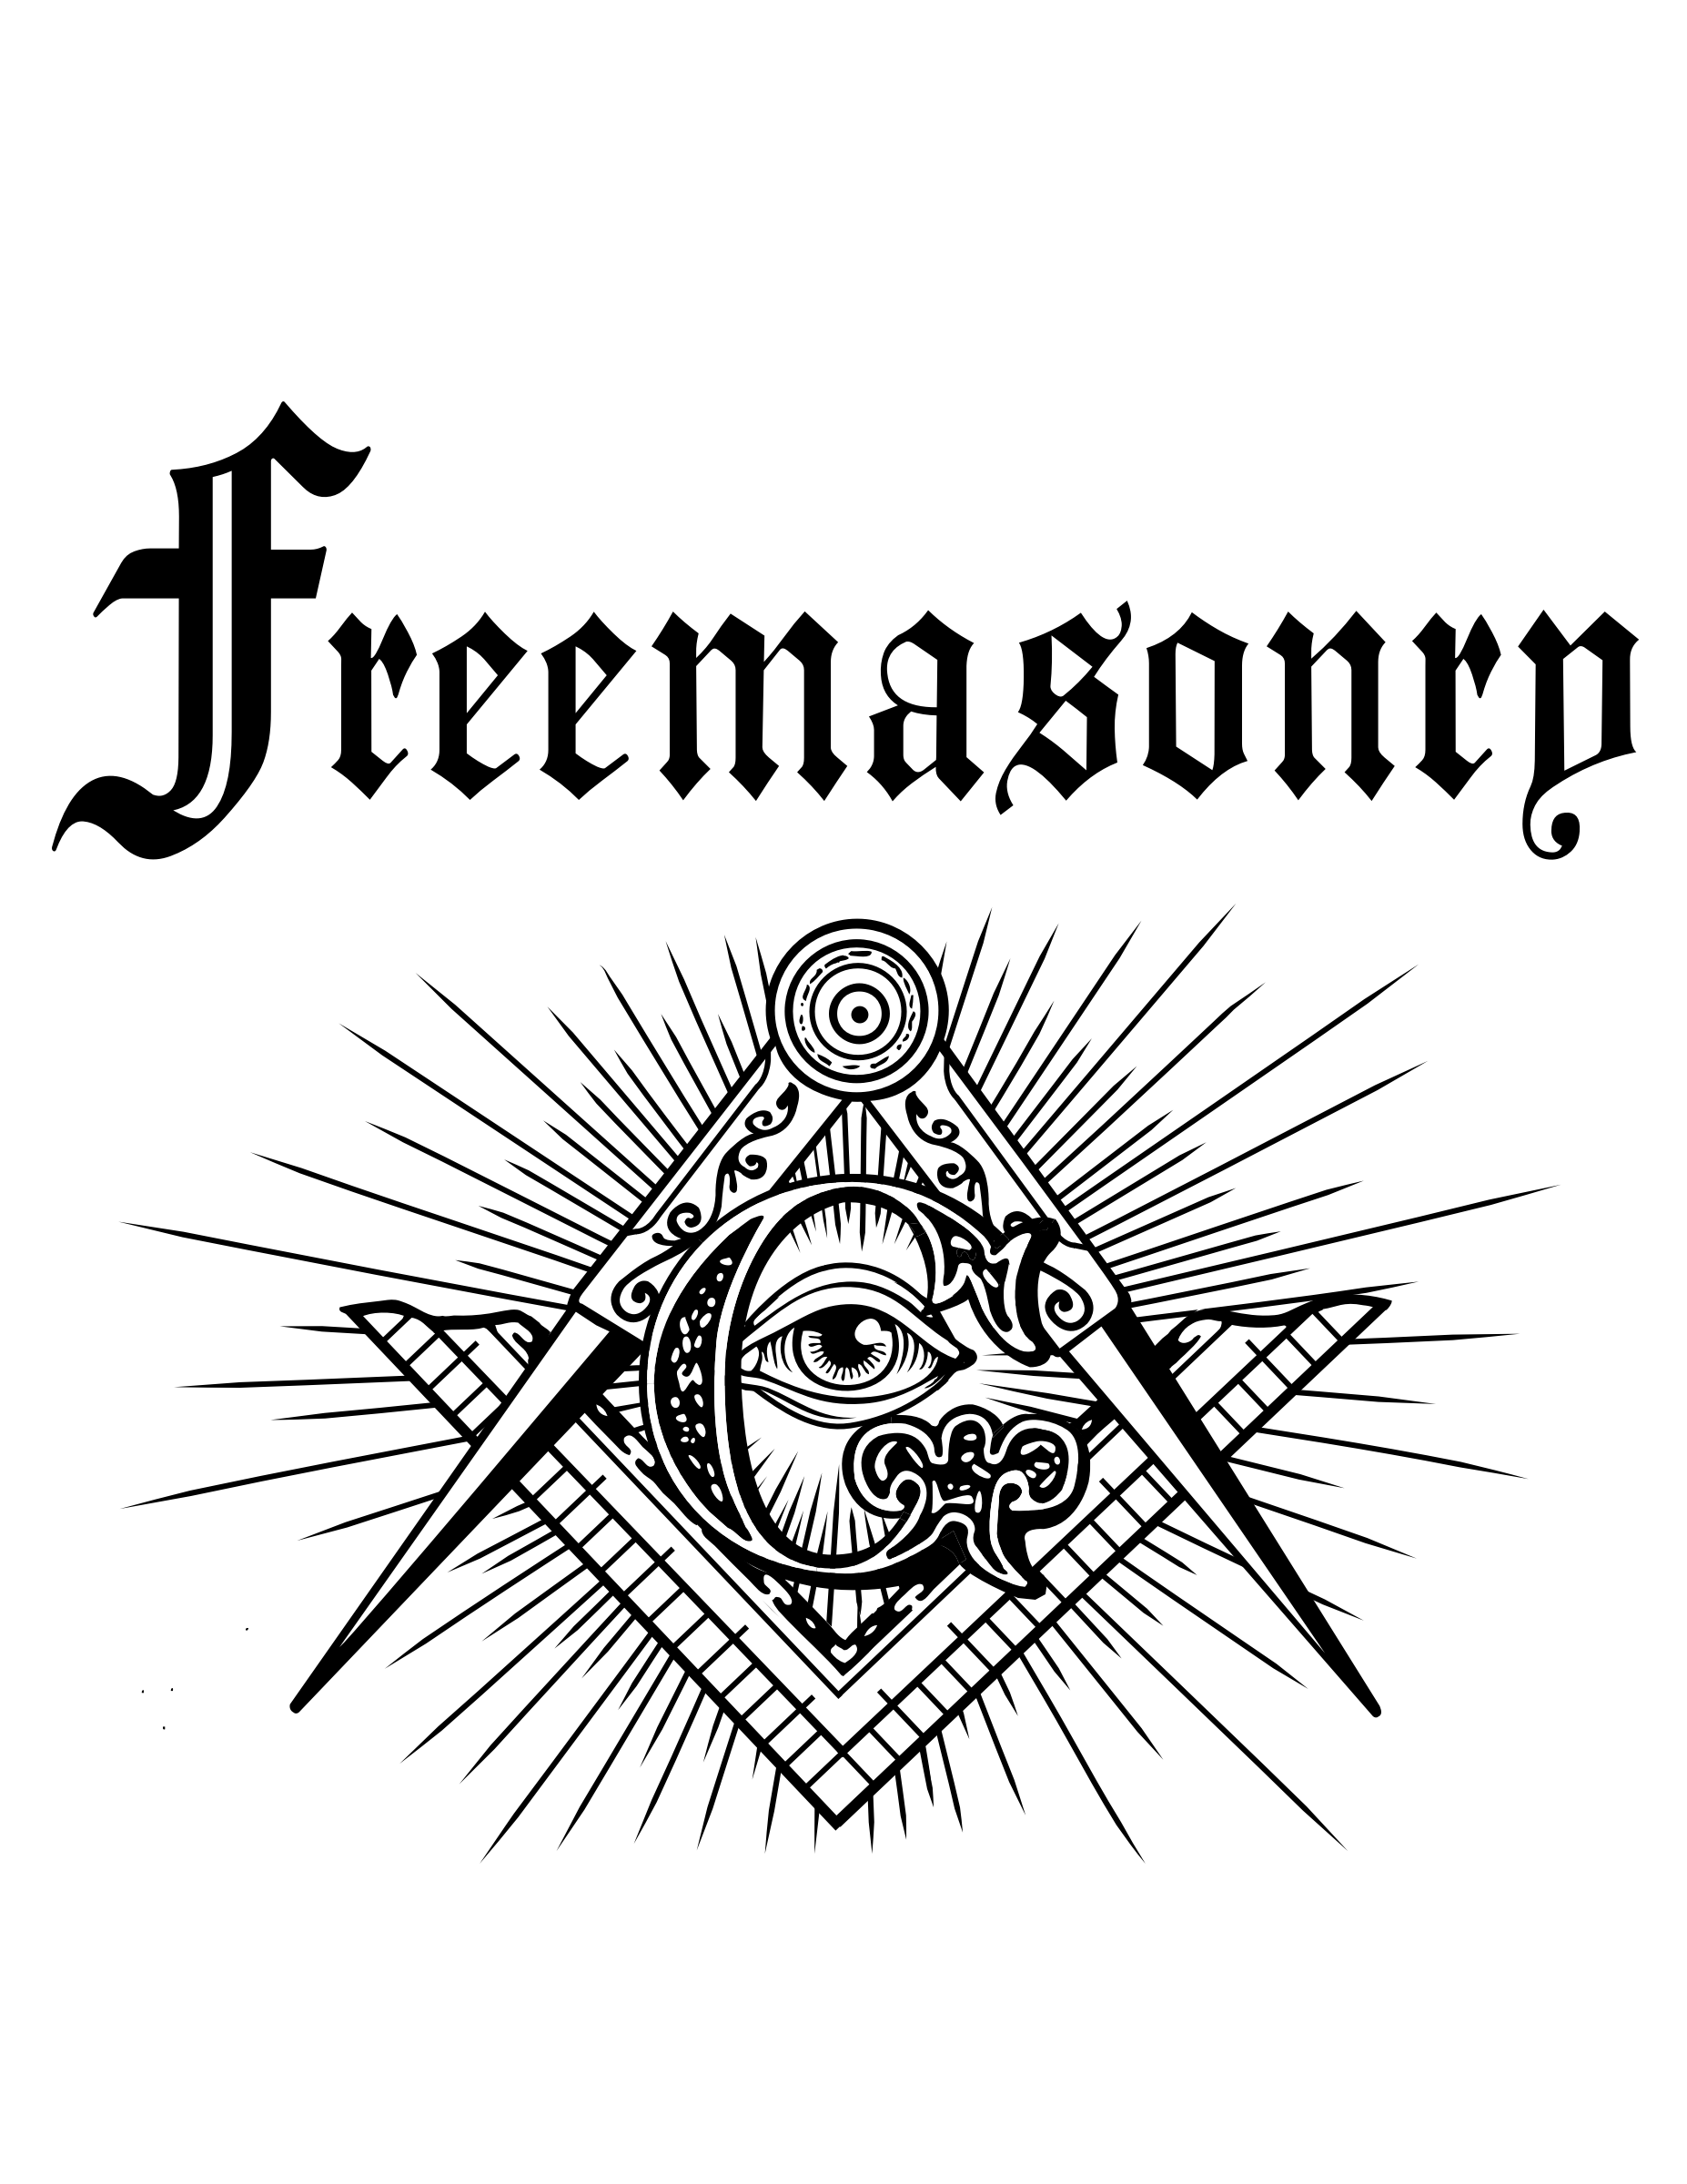 Freemasonry,  Masonic Blue Lodge Logo designed by  Brothers for Brothers. 32nd degree Scottish Rite Freemason  by SacredMasonry